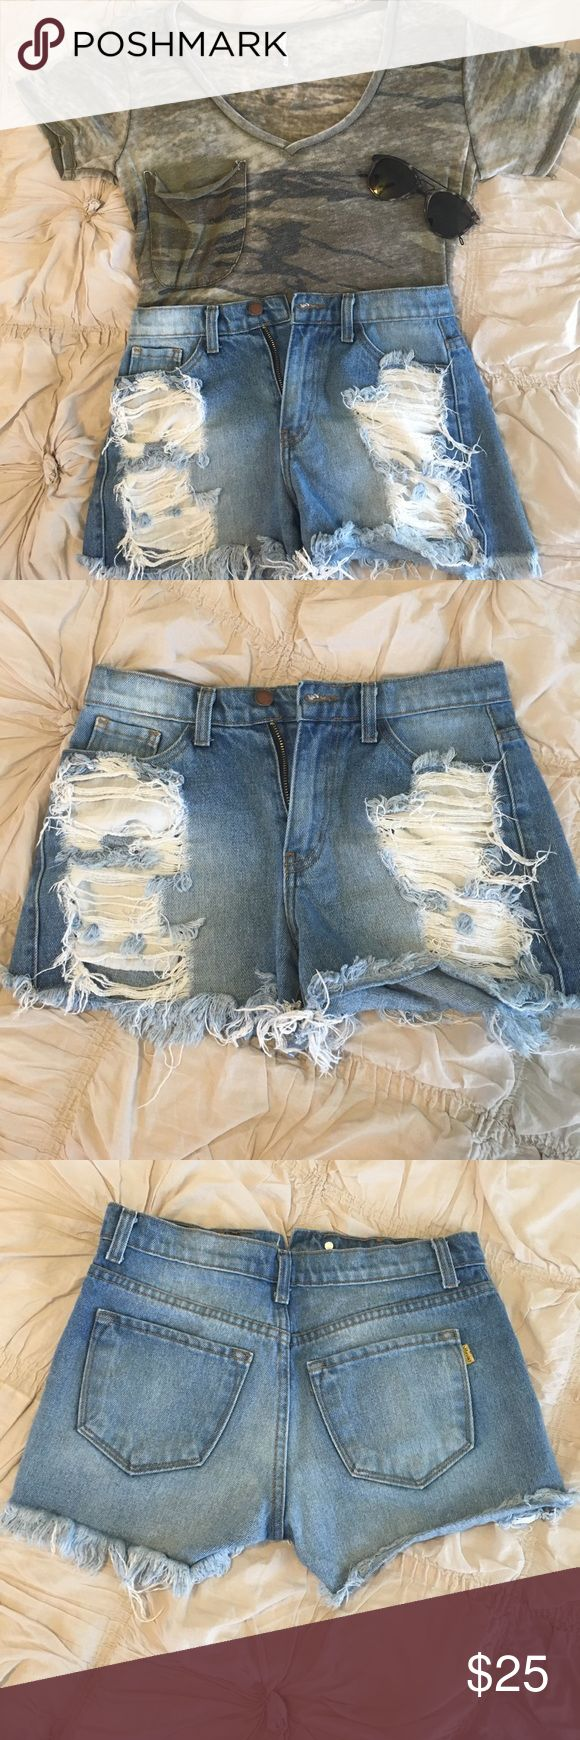 High Waisted Shorts Super distressed high waisted shorts! So adorable! From Apricot Lane Peoria. Size Small. In perfect condition. Vibrant Shorts Jean Shorts